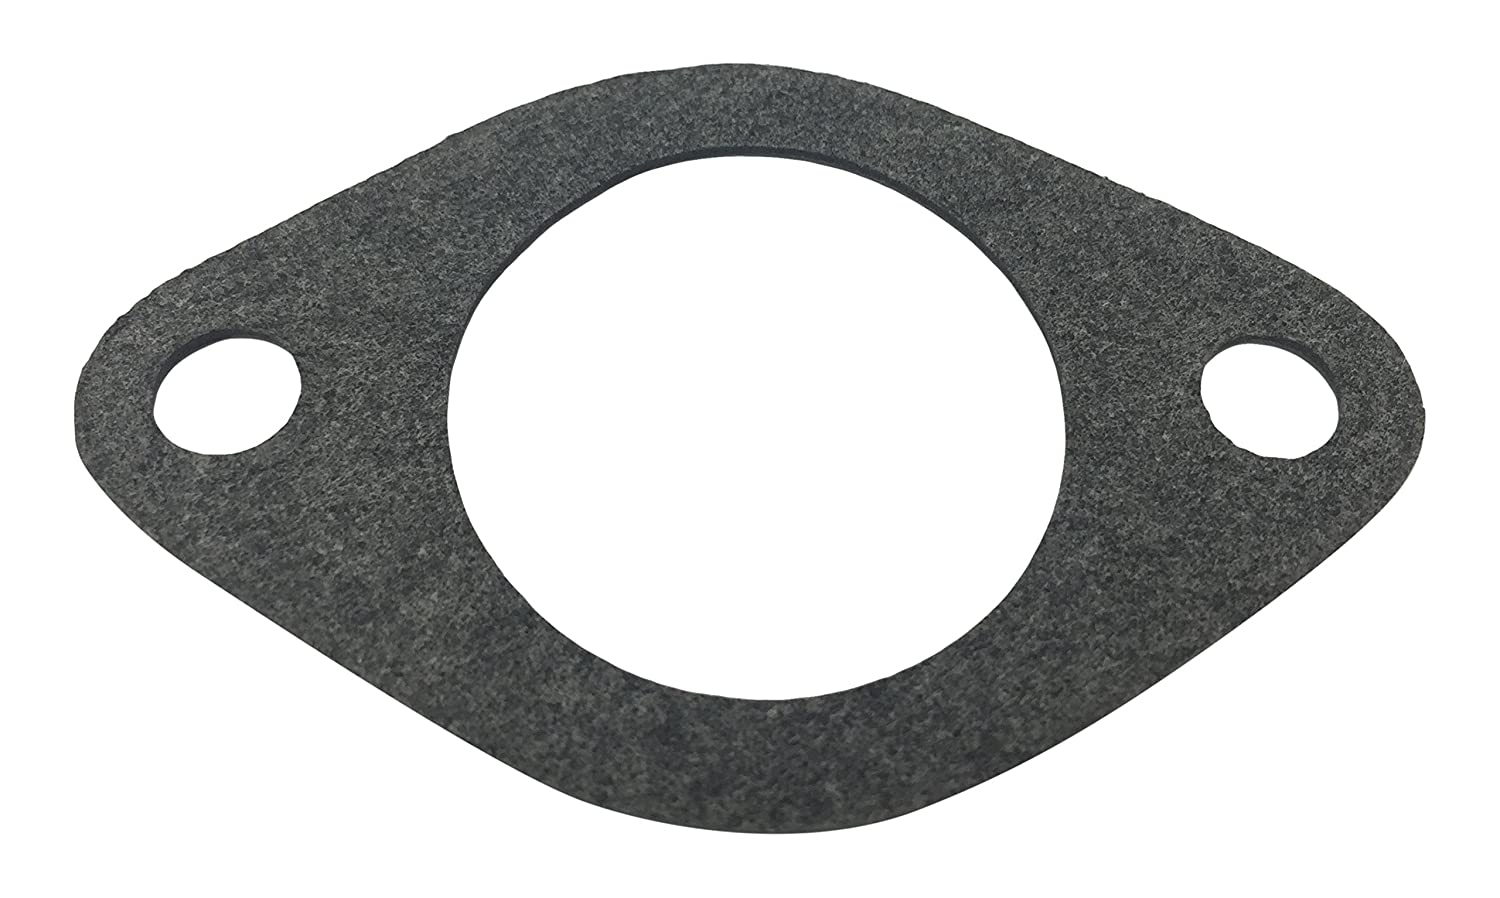 Oregon 49-411 Manifold Gasket Tecumseh Part Numbers 27915 27915A and 30226